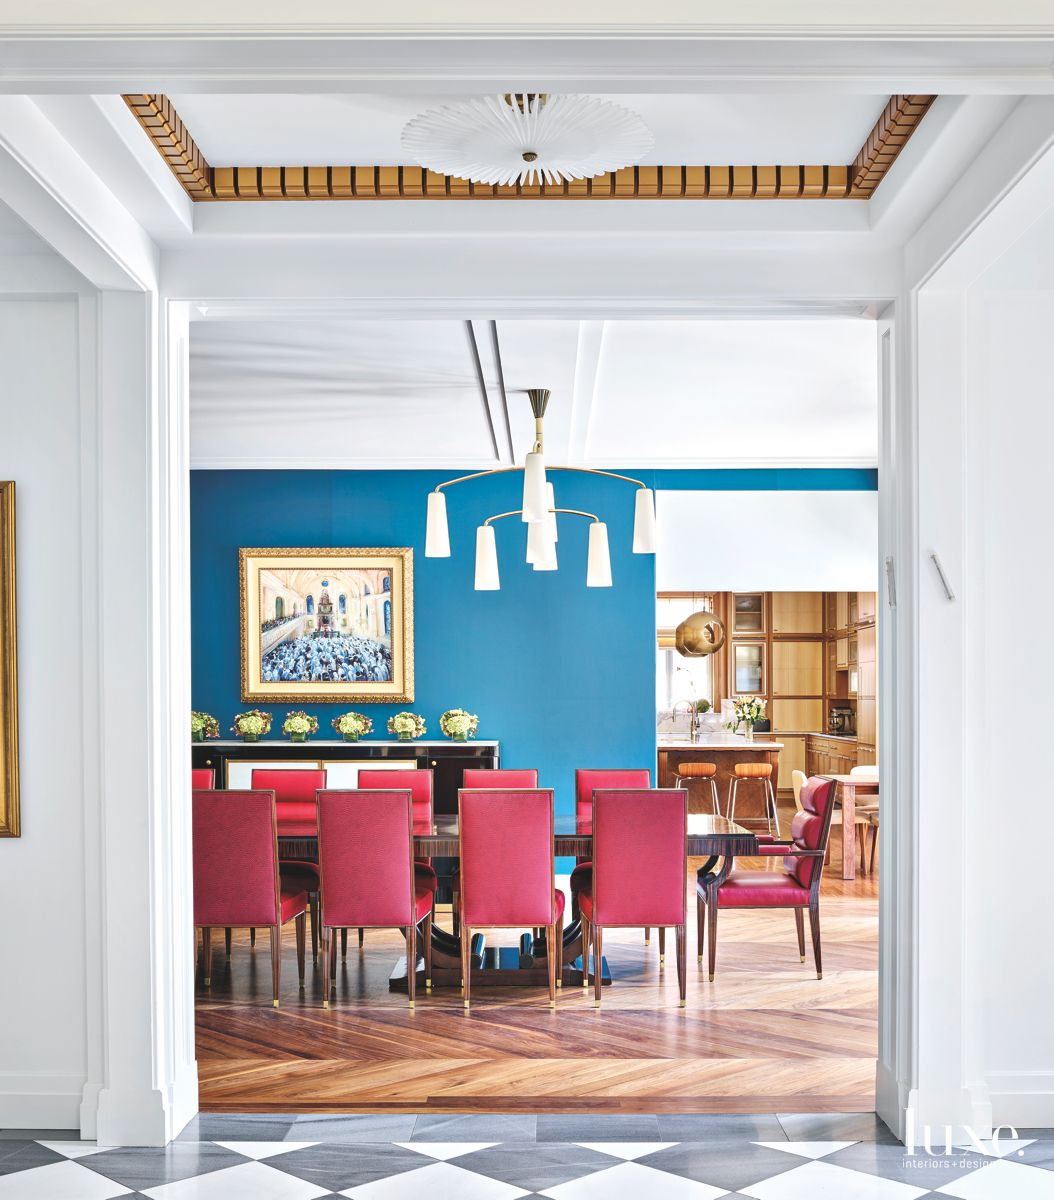 Blue Dining Room with Red Seating and Light Fixture